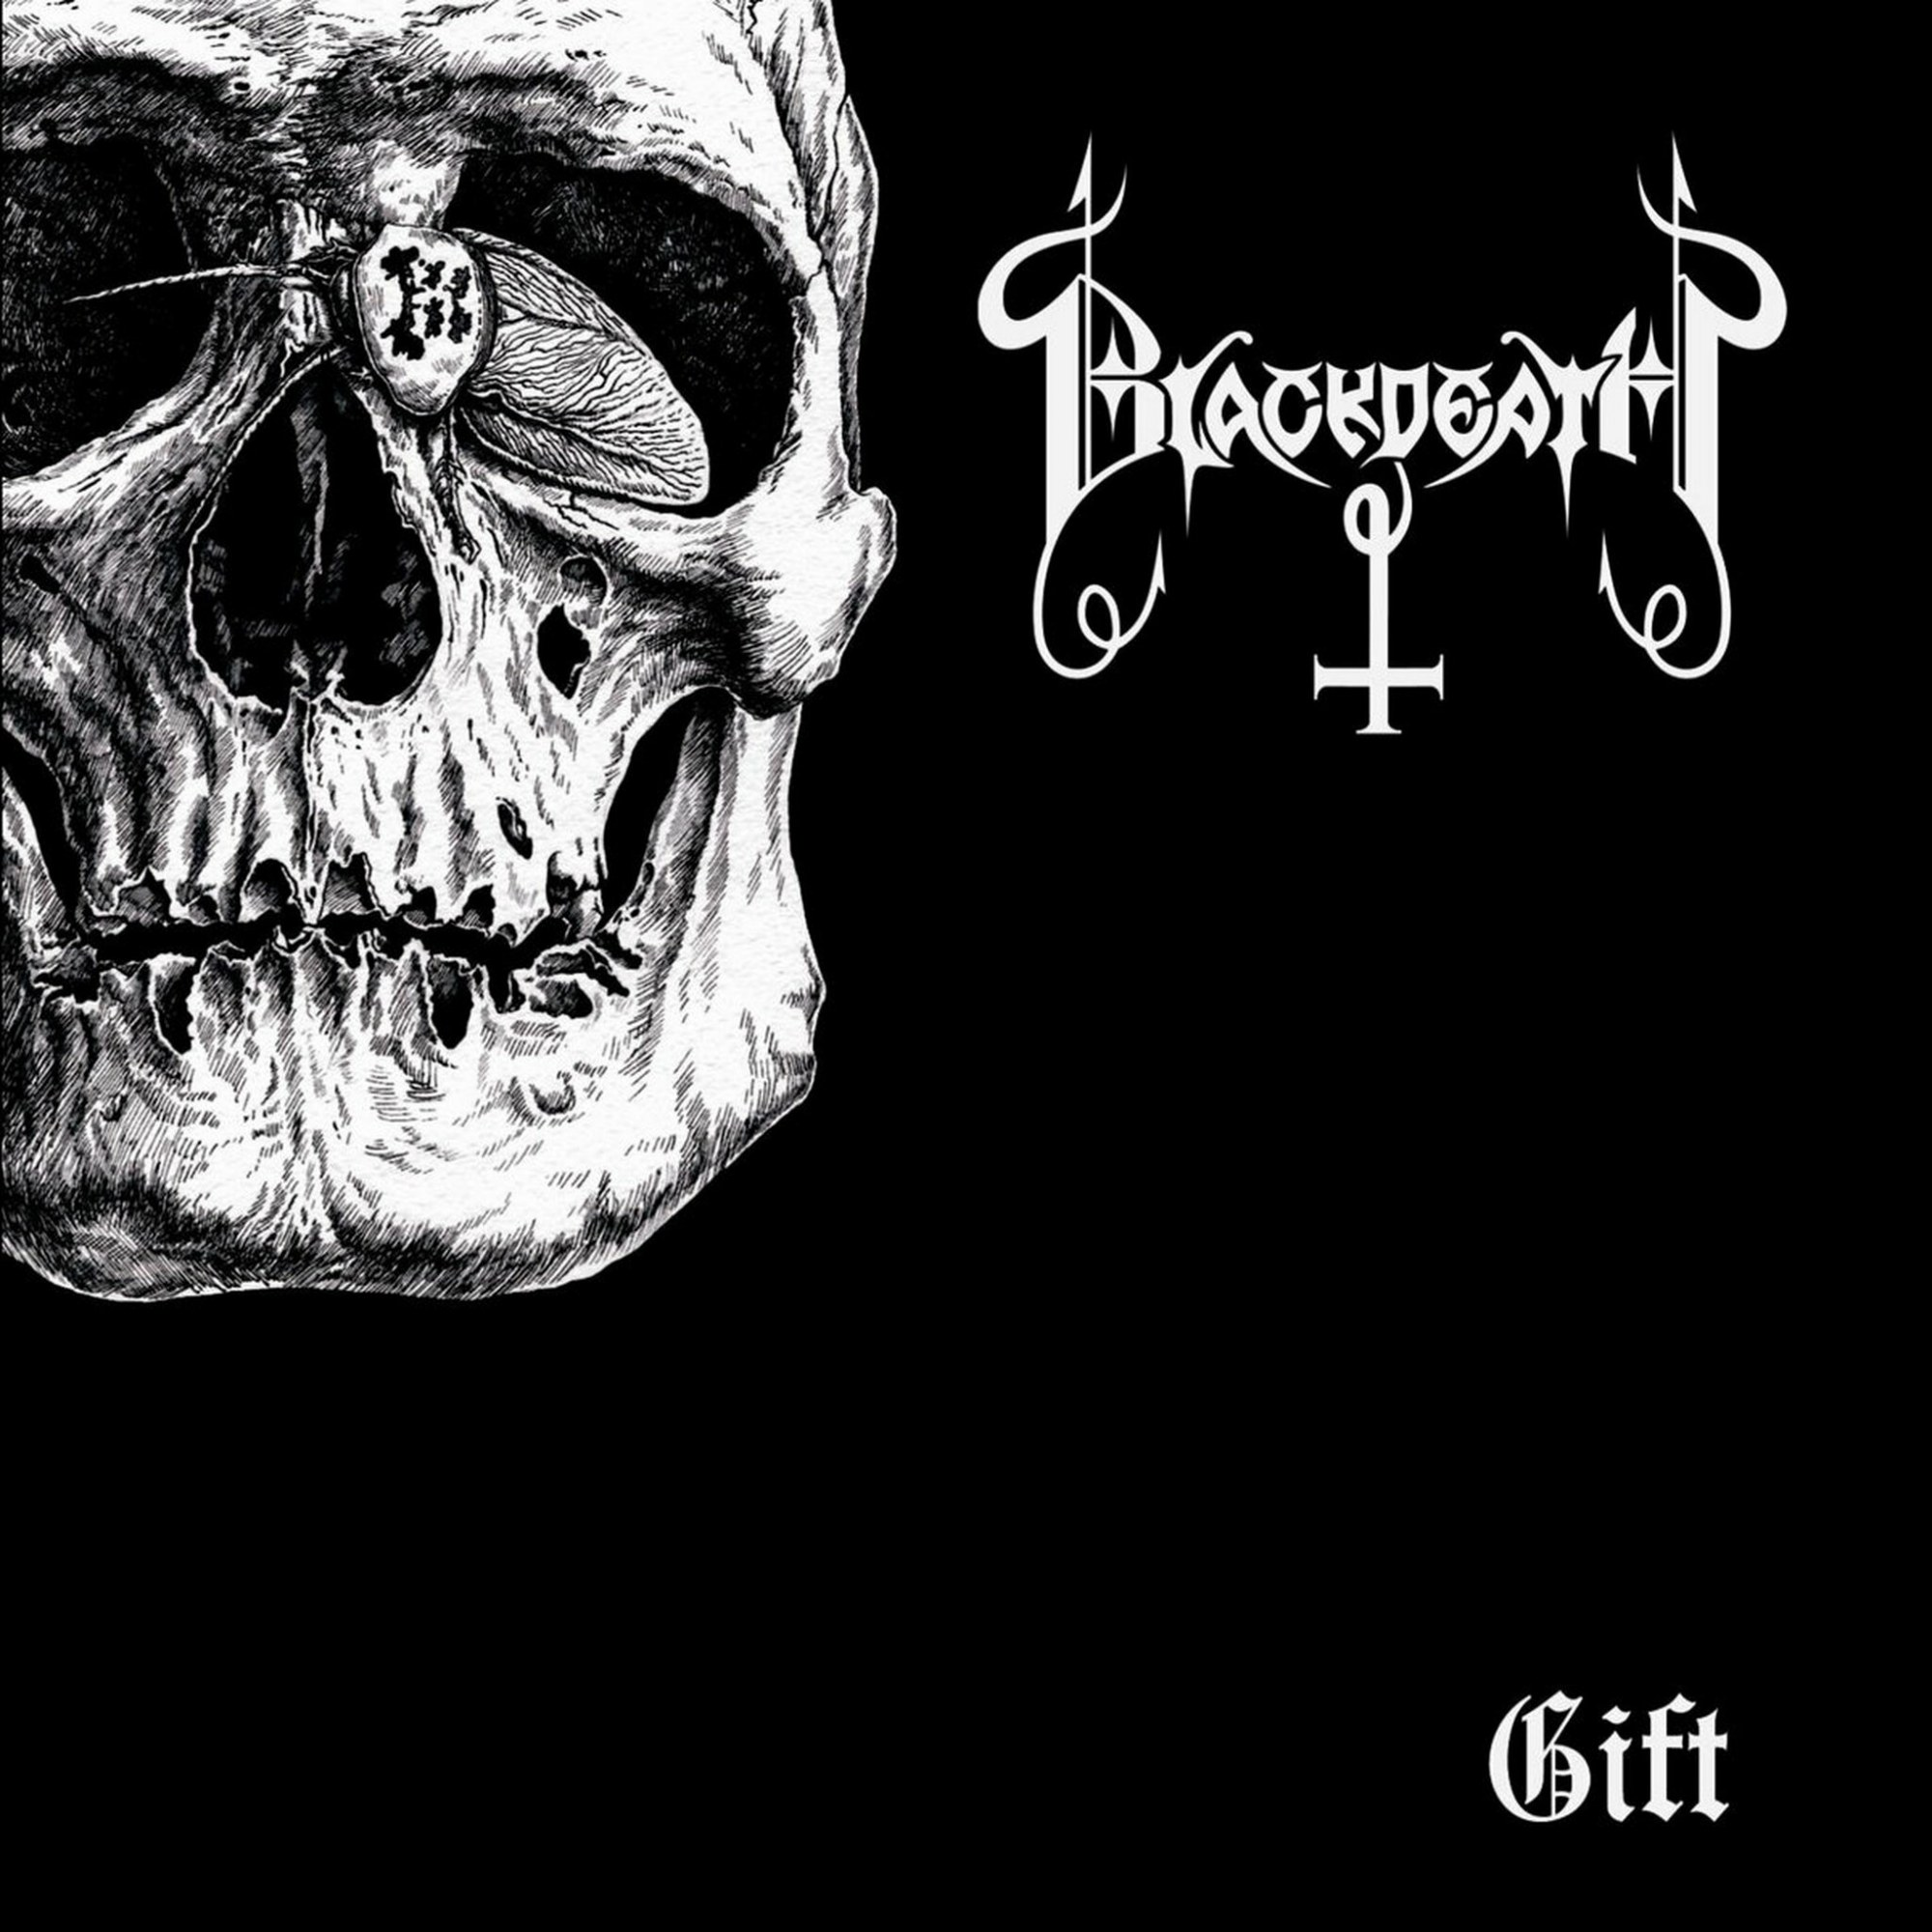 Review for Blackdeath - Gift